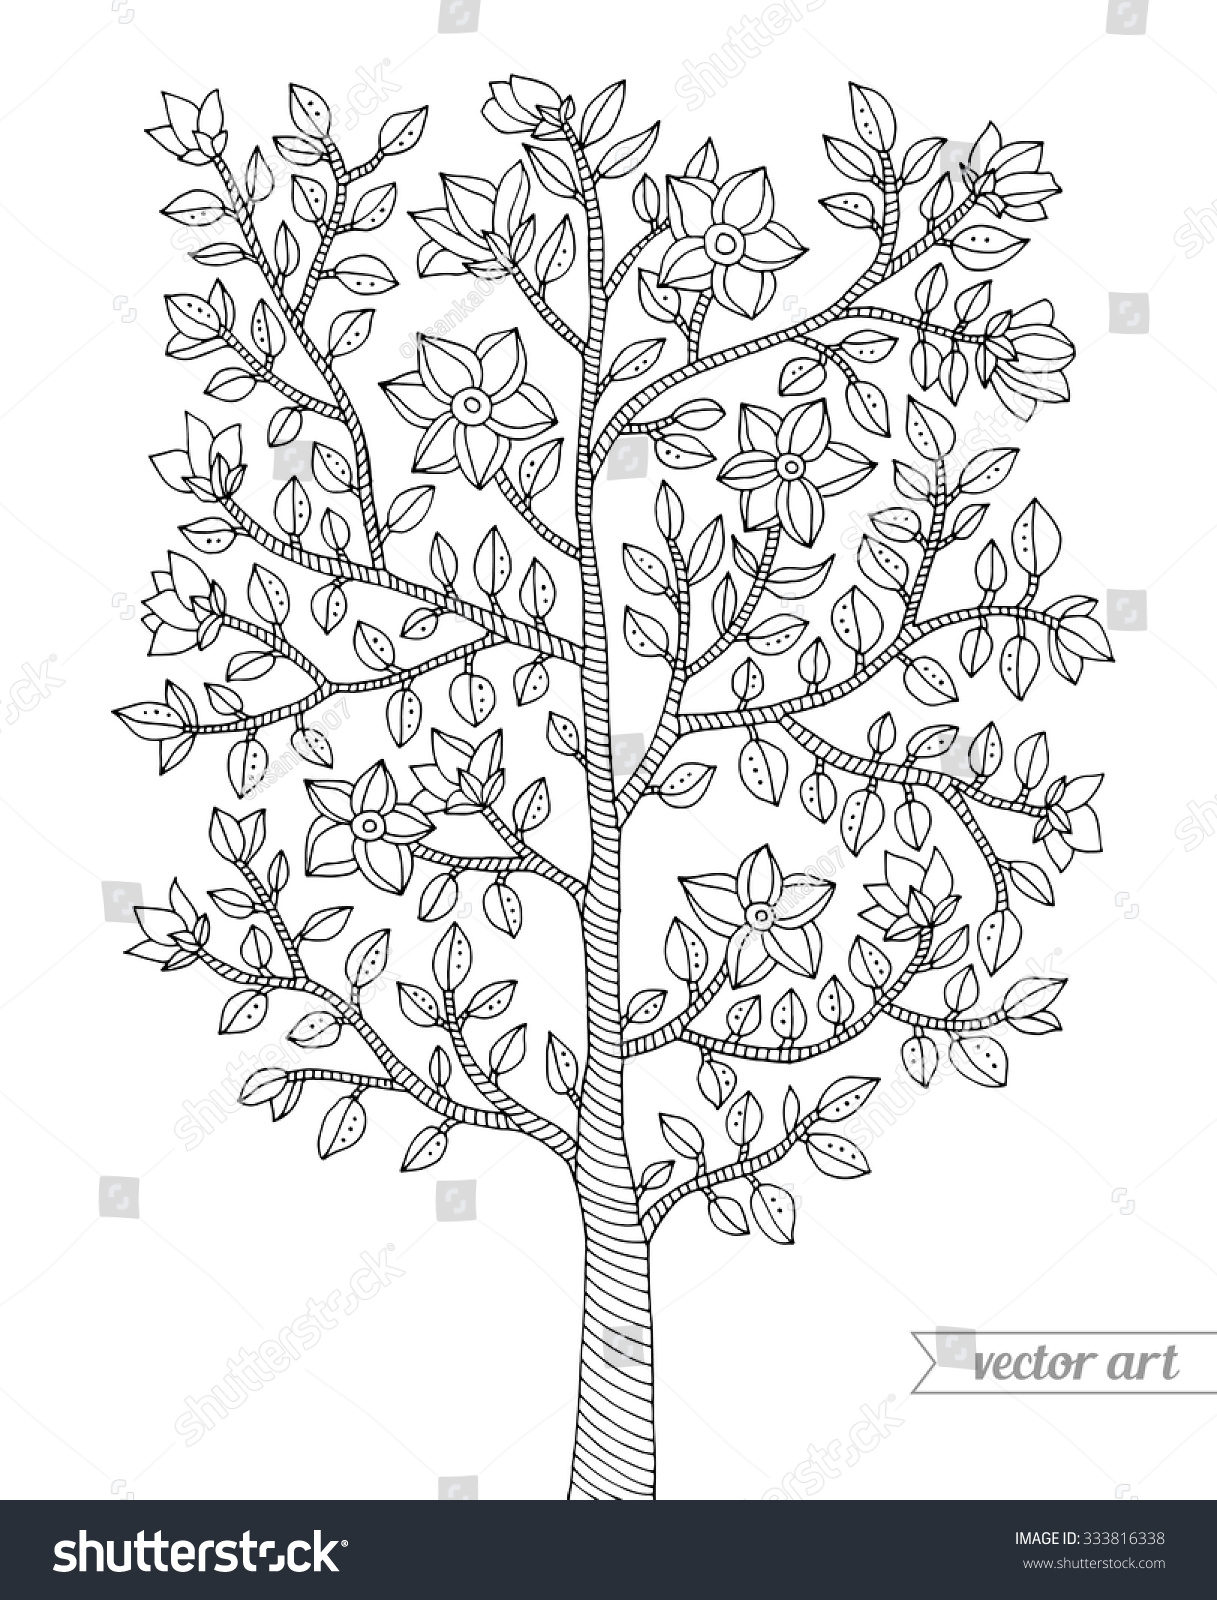 Coloring pages trees and flowers - Forest Tree Bush Flowers Blossom Branch With Leaves Vector